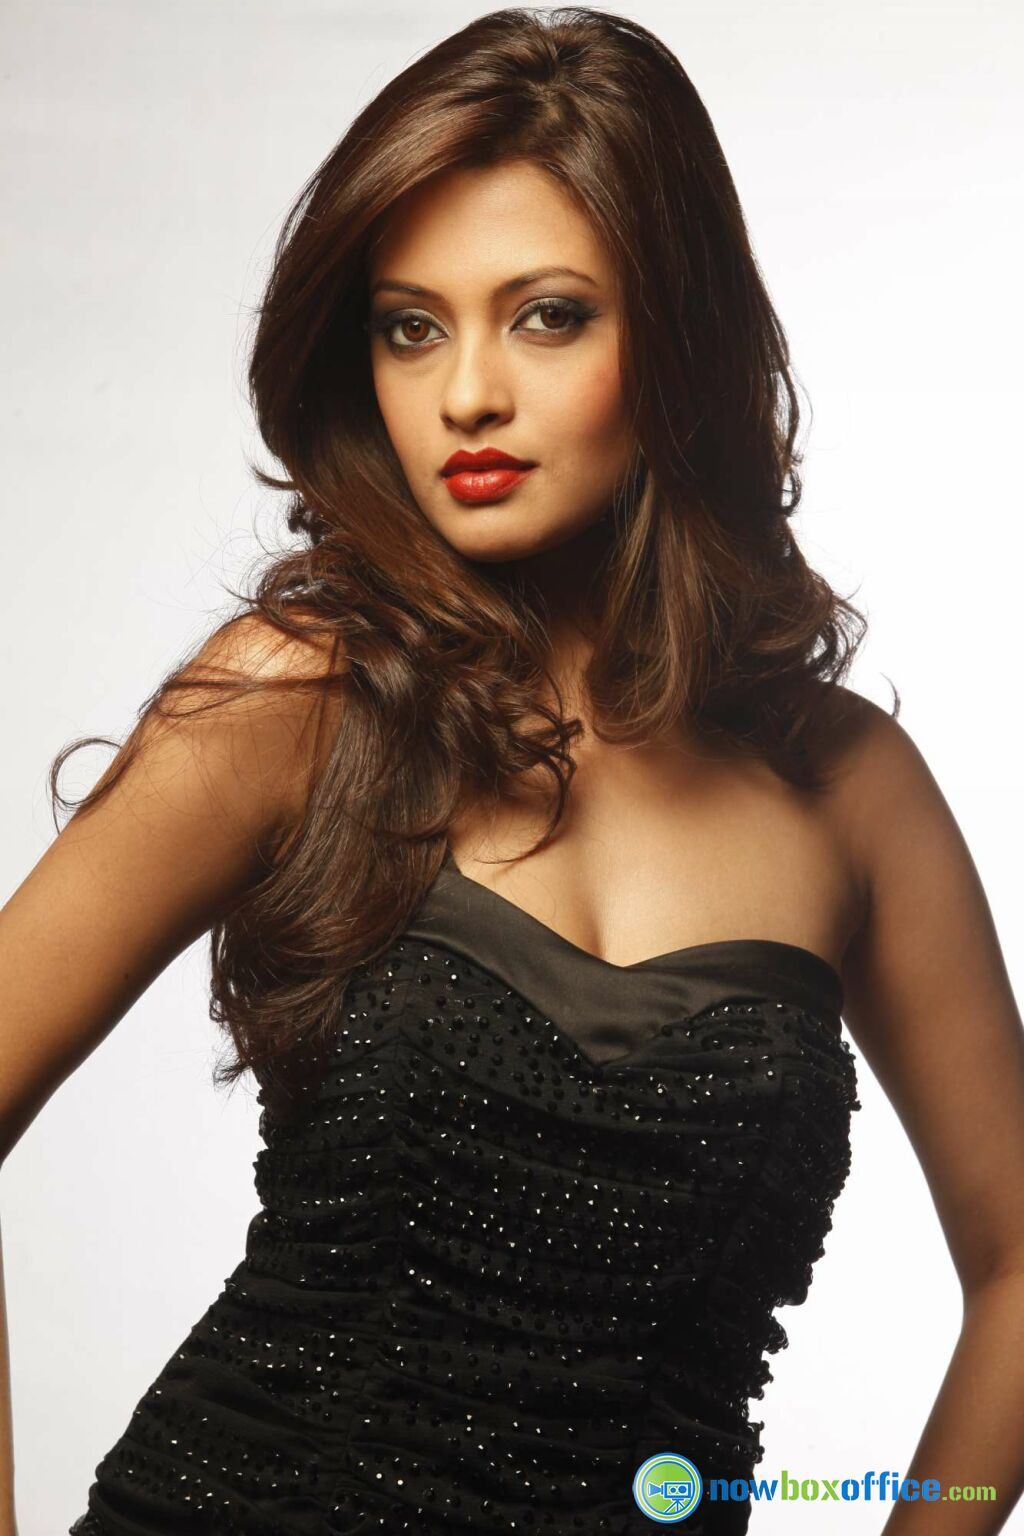 Riya Sen Hot Photos Riya Sen Hot Gallery (3